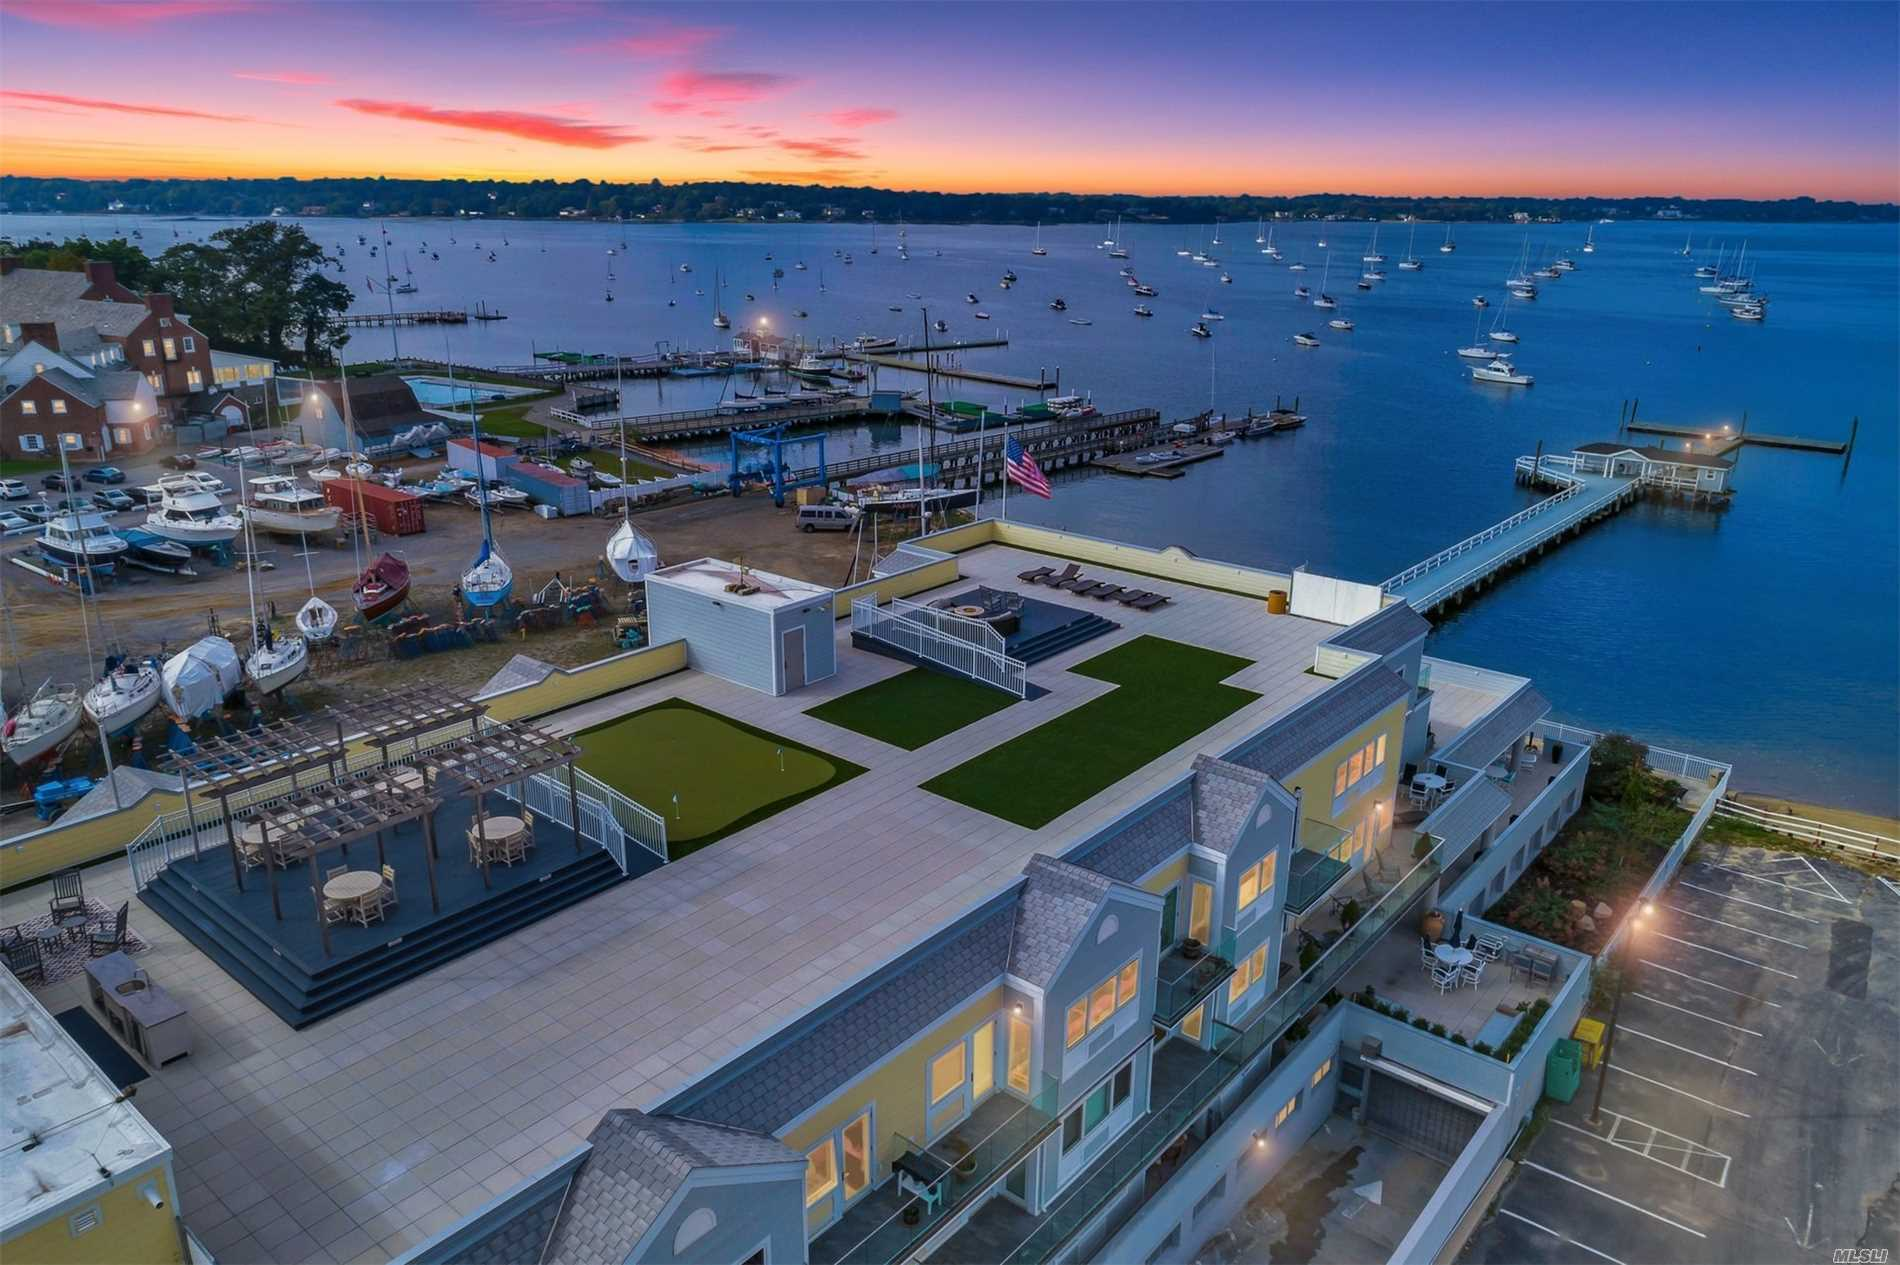 Welcome To The Knickerbocker Bay Club, An Active 62 And Over Waterfront Community. Built In 2015, This Unit Was Customized W/ Fireplace, Hi-Hats, Closet System, Crown Moldings. Views Of Manhasset Bay From Both Terraces. 1 Deeded Garage Spot And Use Of 2nd Spot. Common Charges= $1, 338/Monthly Including Heat. Large Locked Storage Unit Deeded W/ Unit In Garage Adjacent To Parking Spot. Apartment Benefits From Building Generator As Needed. Roof Top Has Bbq, Mini Kit. Firepit, Putting Greens, Pergola